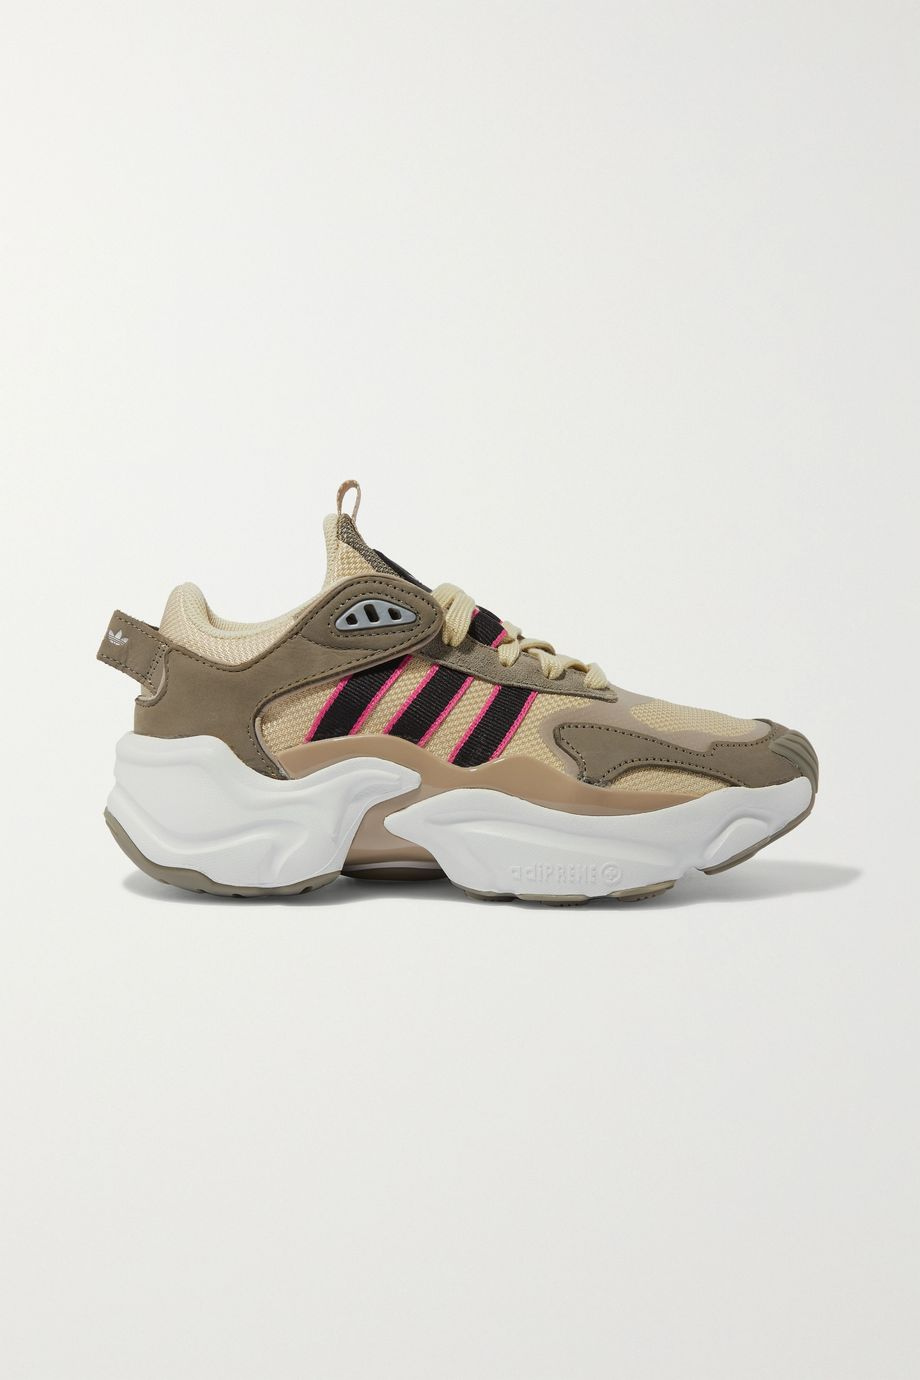 adidas Originals Magmur Runner mesh, suede and leather sneakers